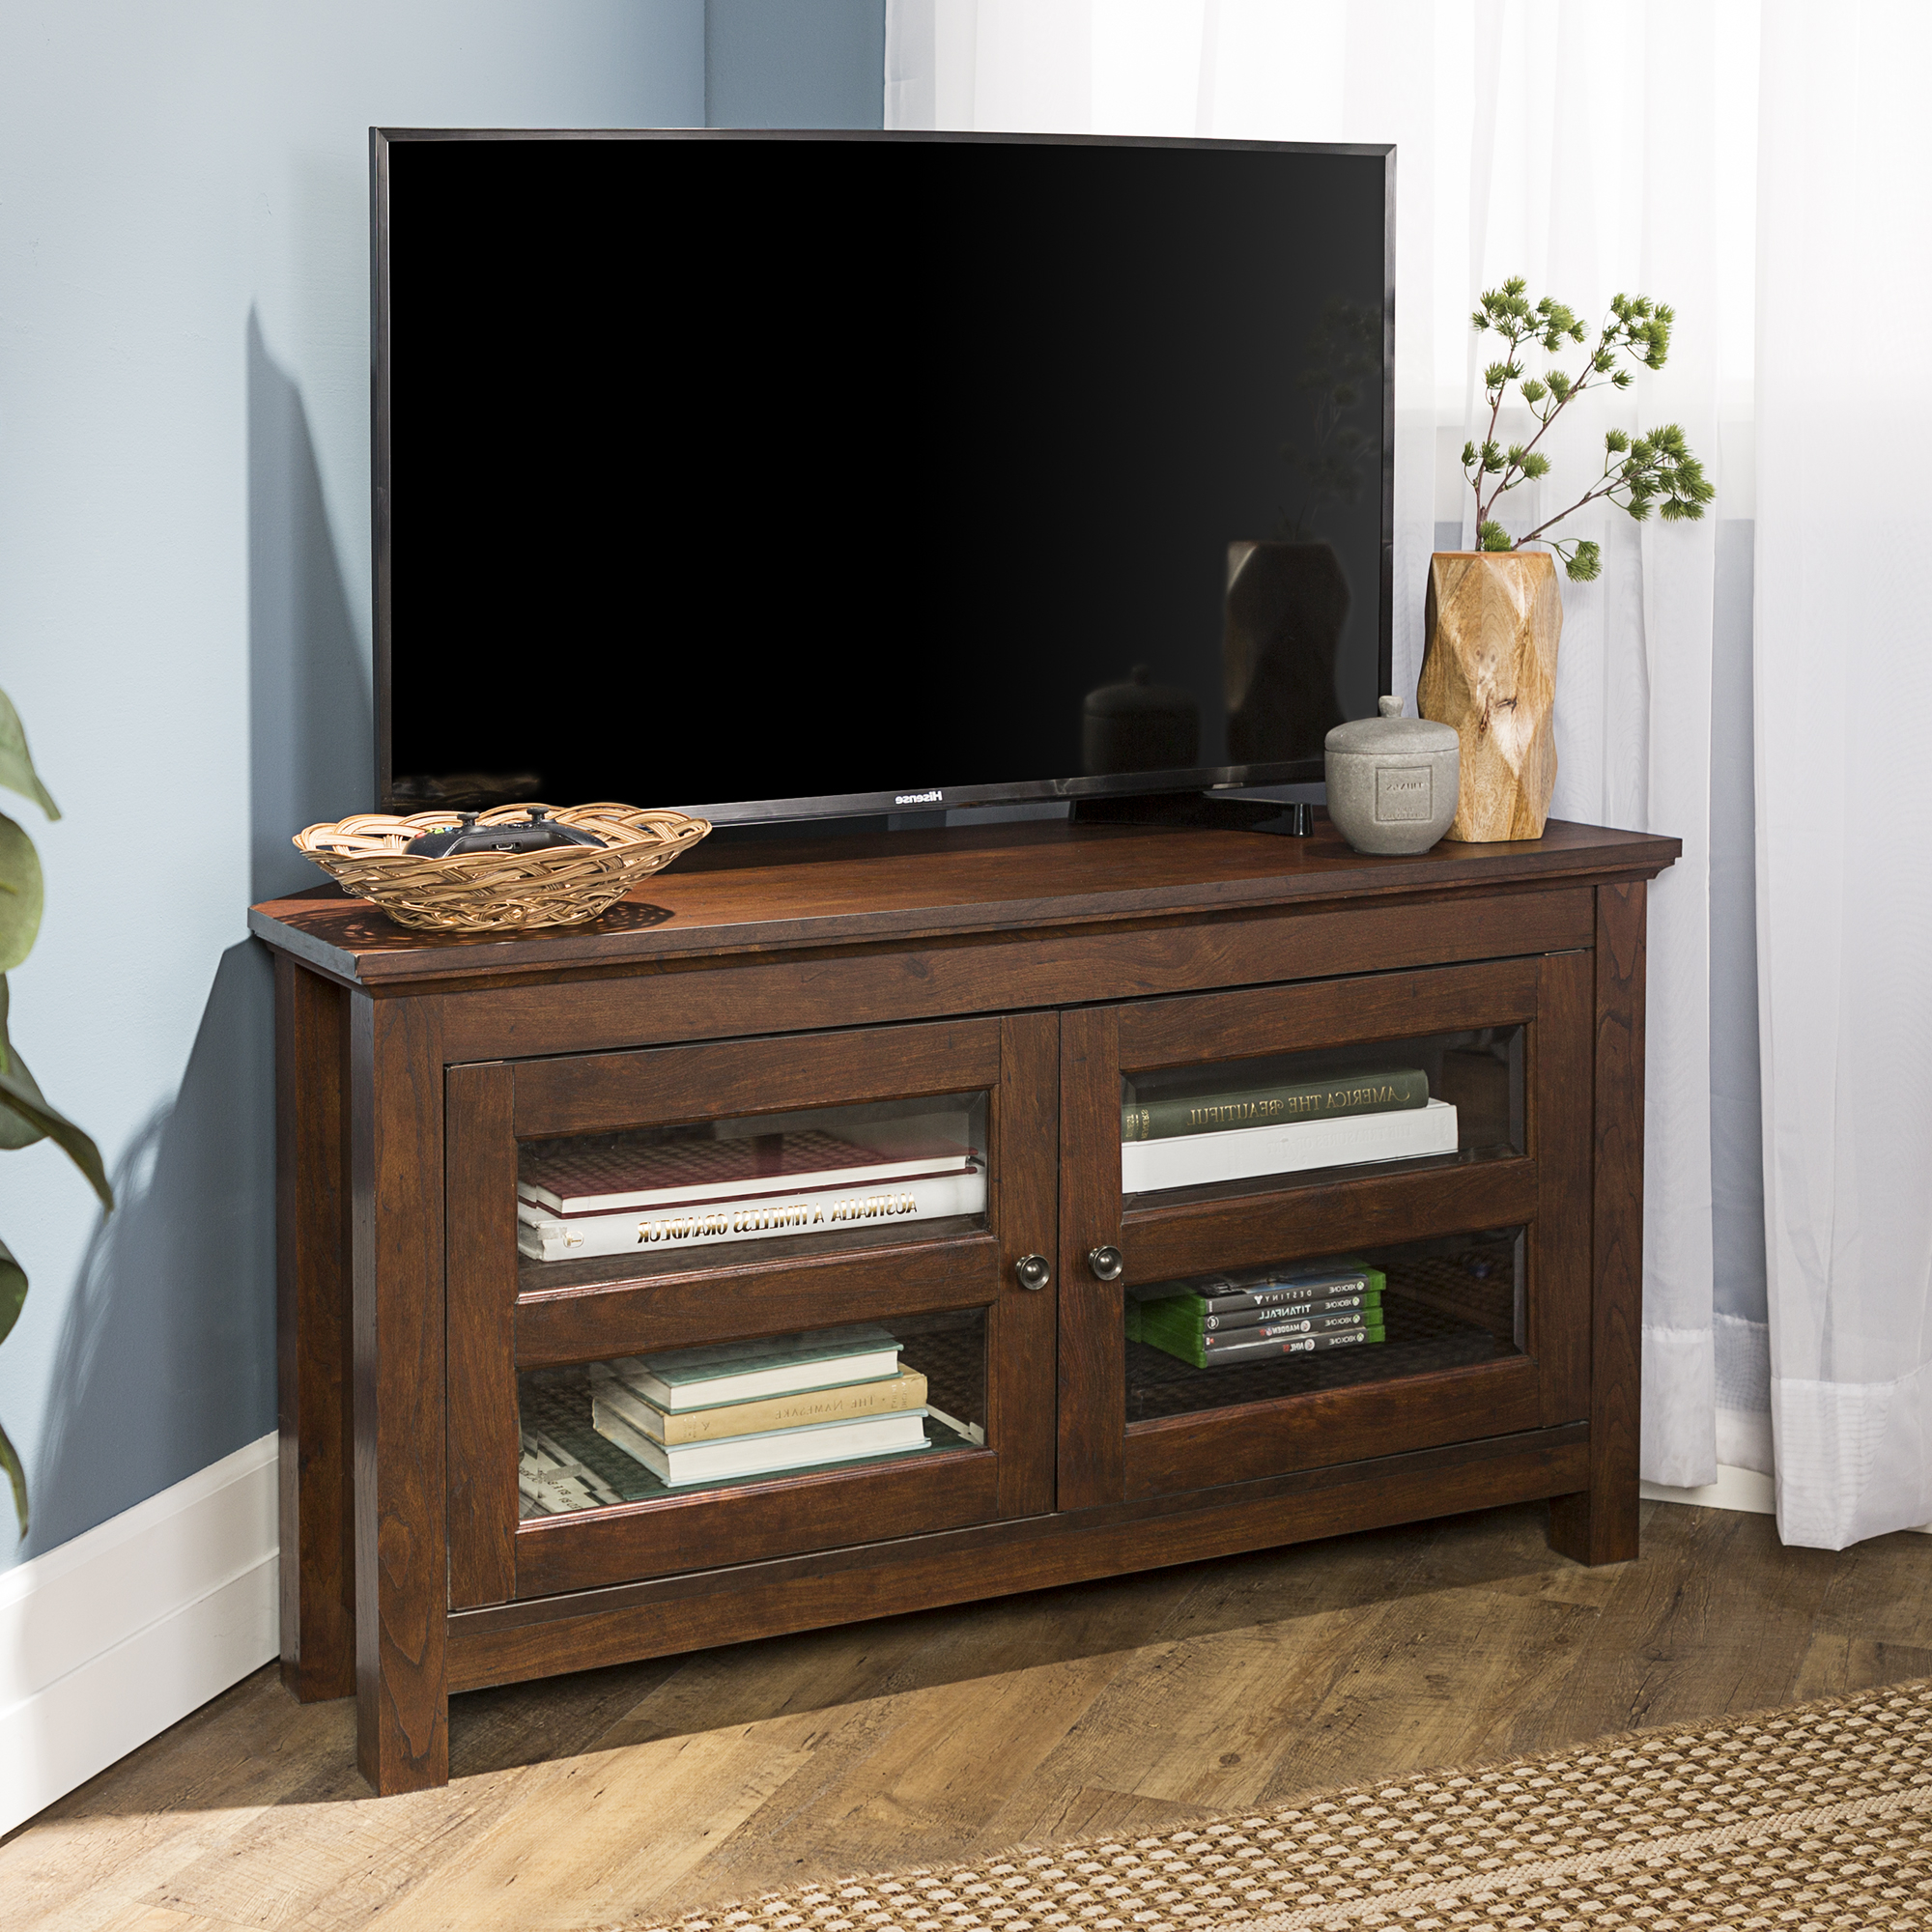 Wood Corner Media Storage Console Tv Stand For Tvs Up To For Tv Stands With Led Lights In Multiple Finishes (View 12 of 20)